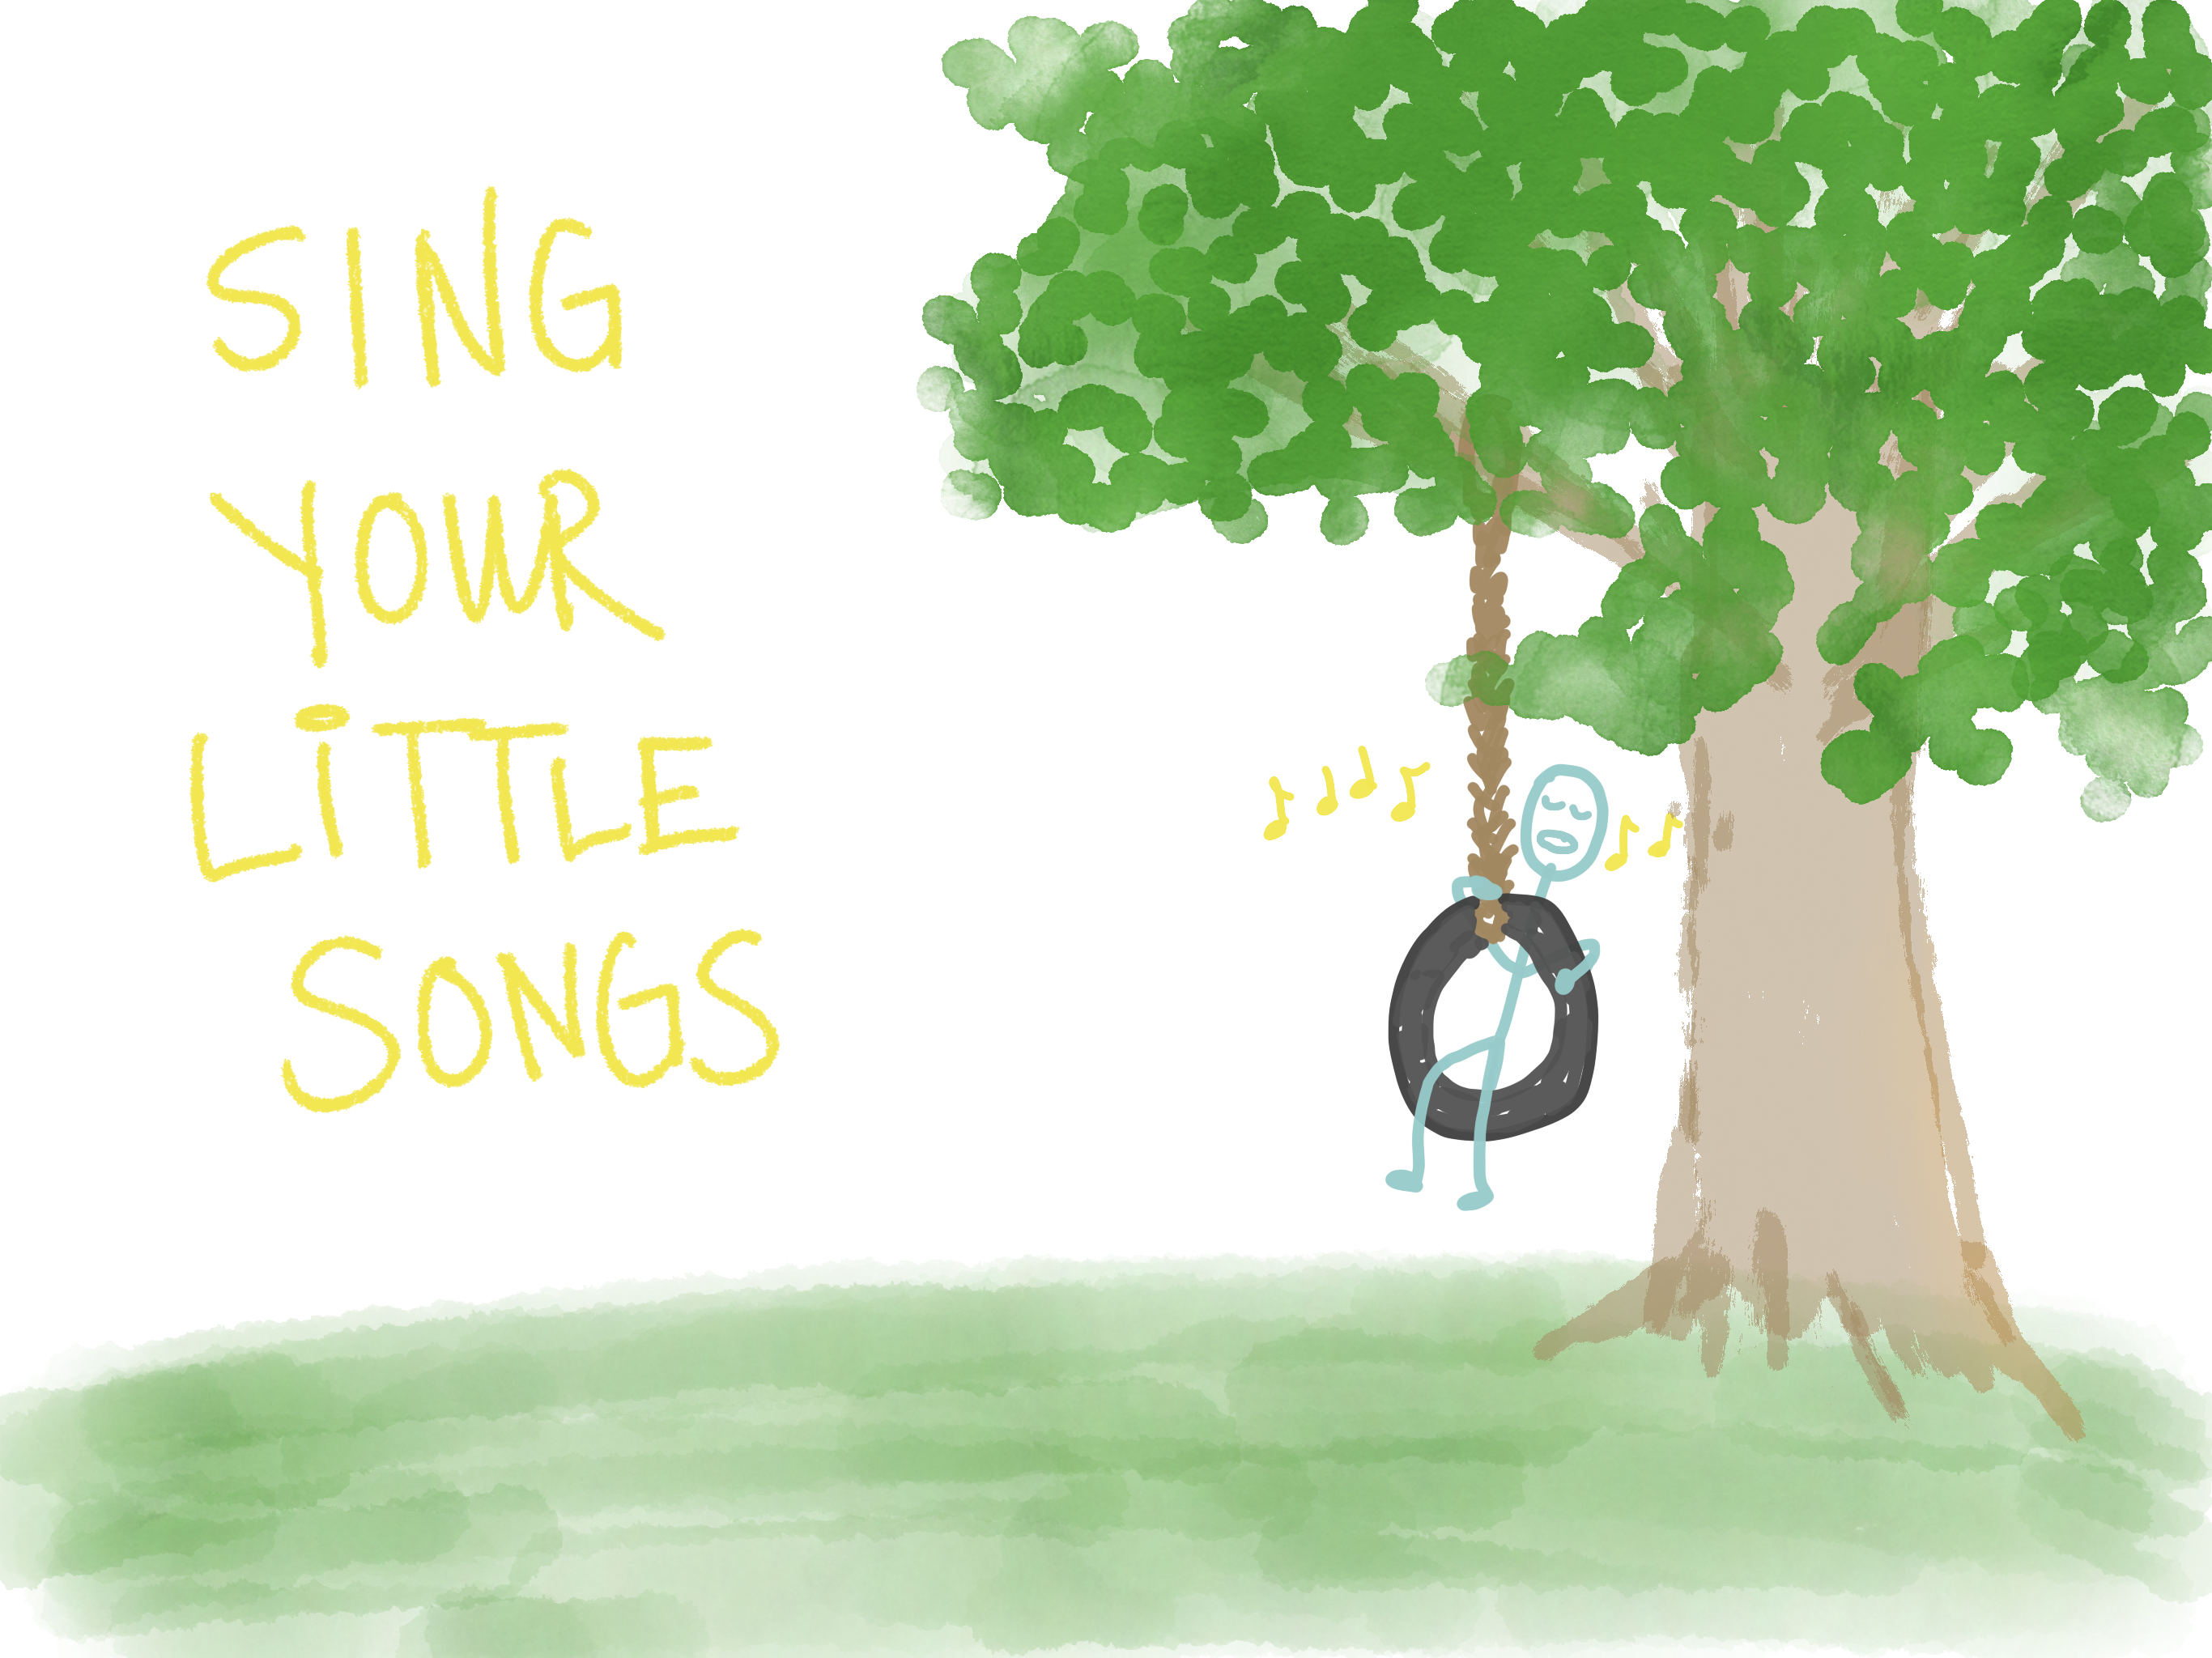 Sing your little songs